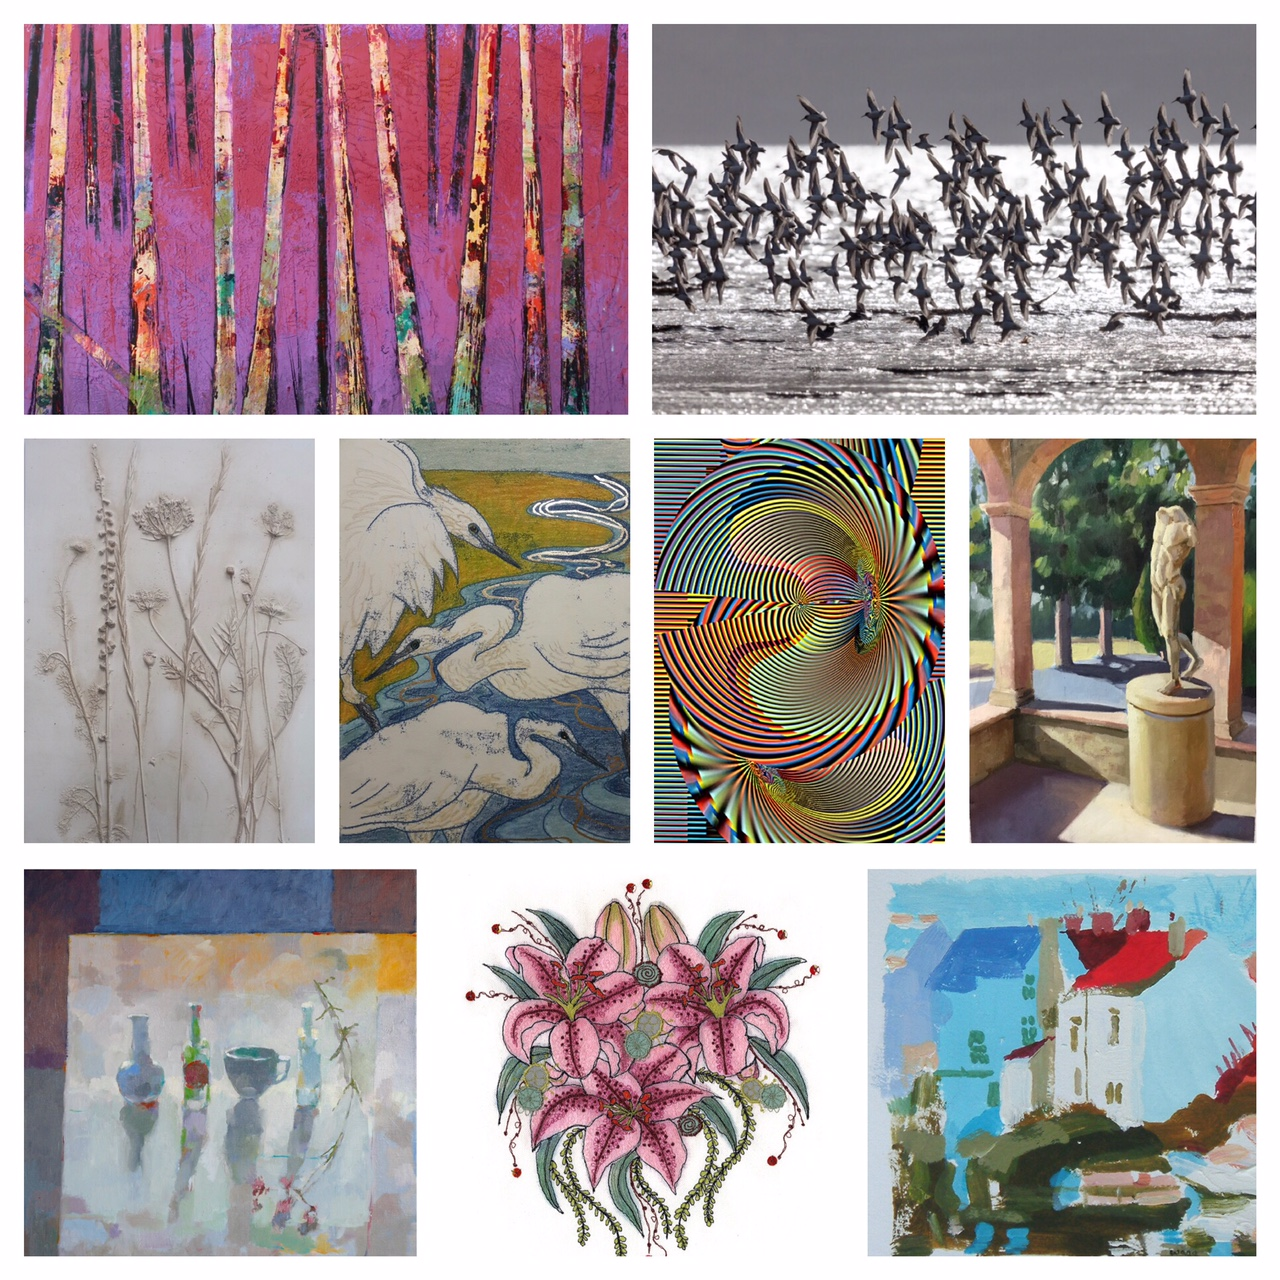 Seagrass Gallery: Open Exhibition